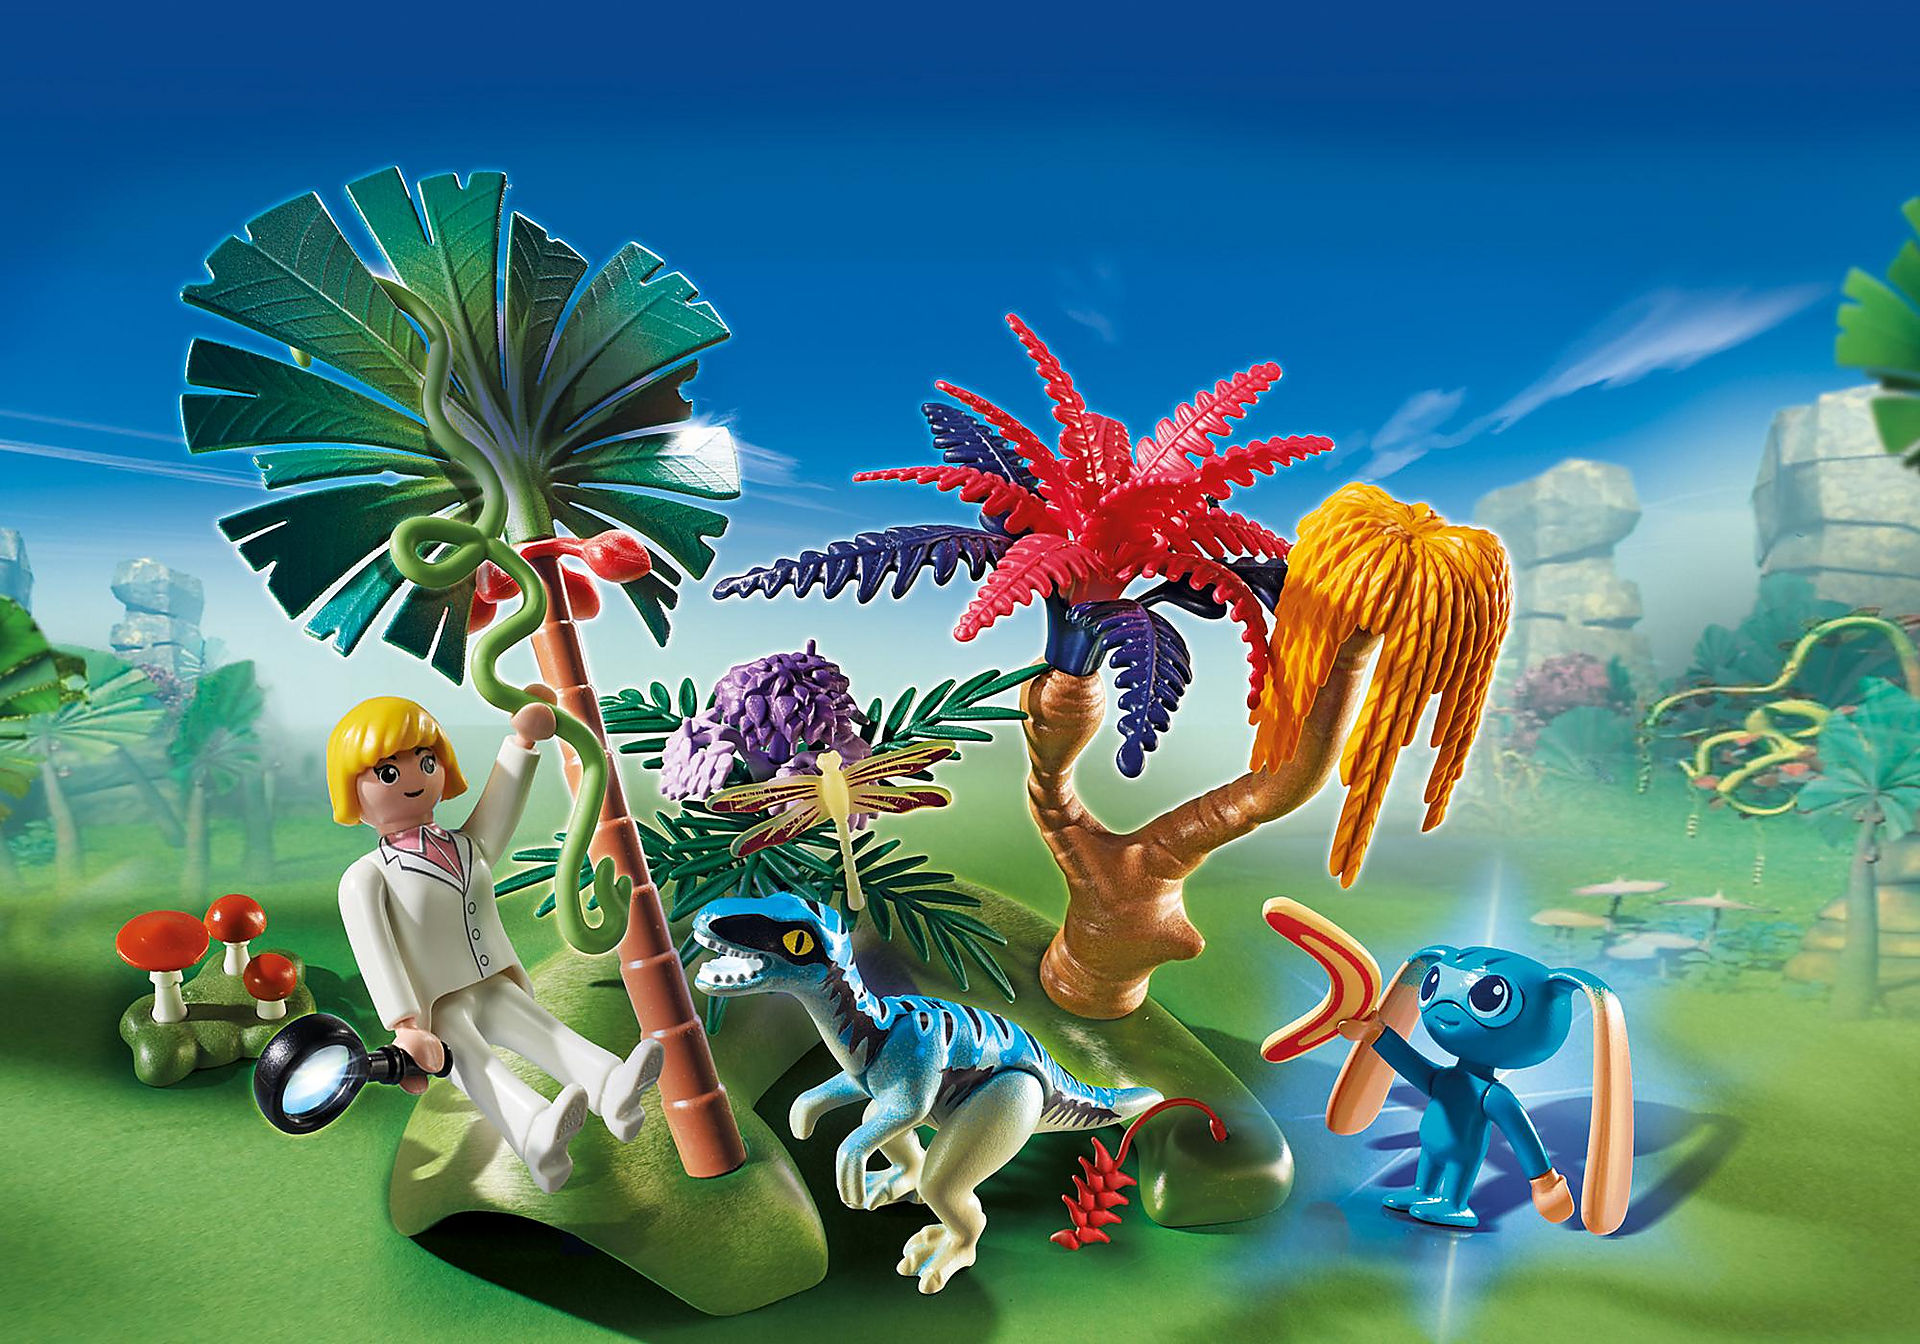 http://media.playmobil.com/i/playmobil/6687_product_detail/Lost Island with Alien and Raptor